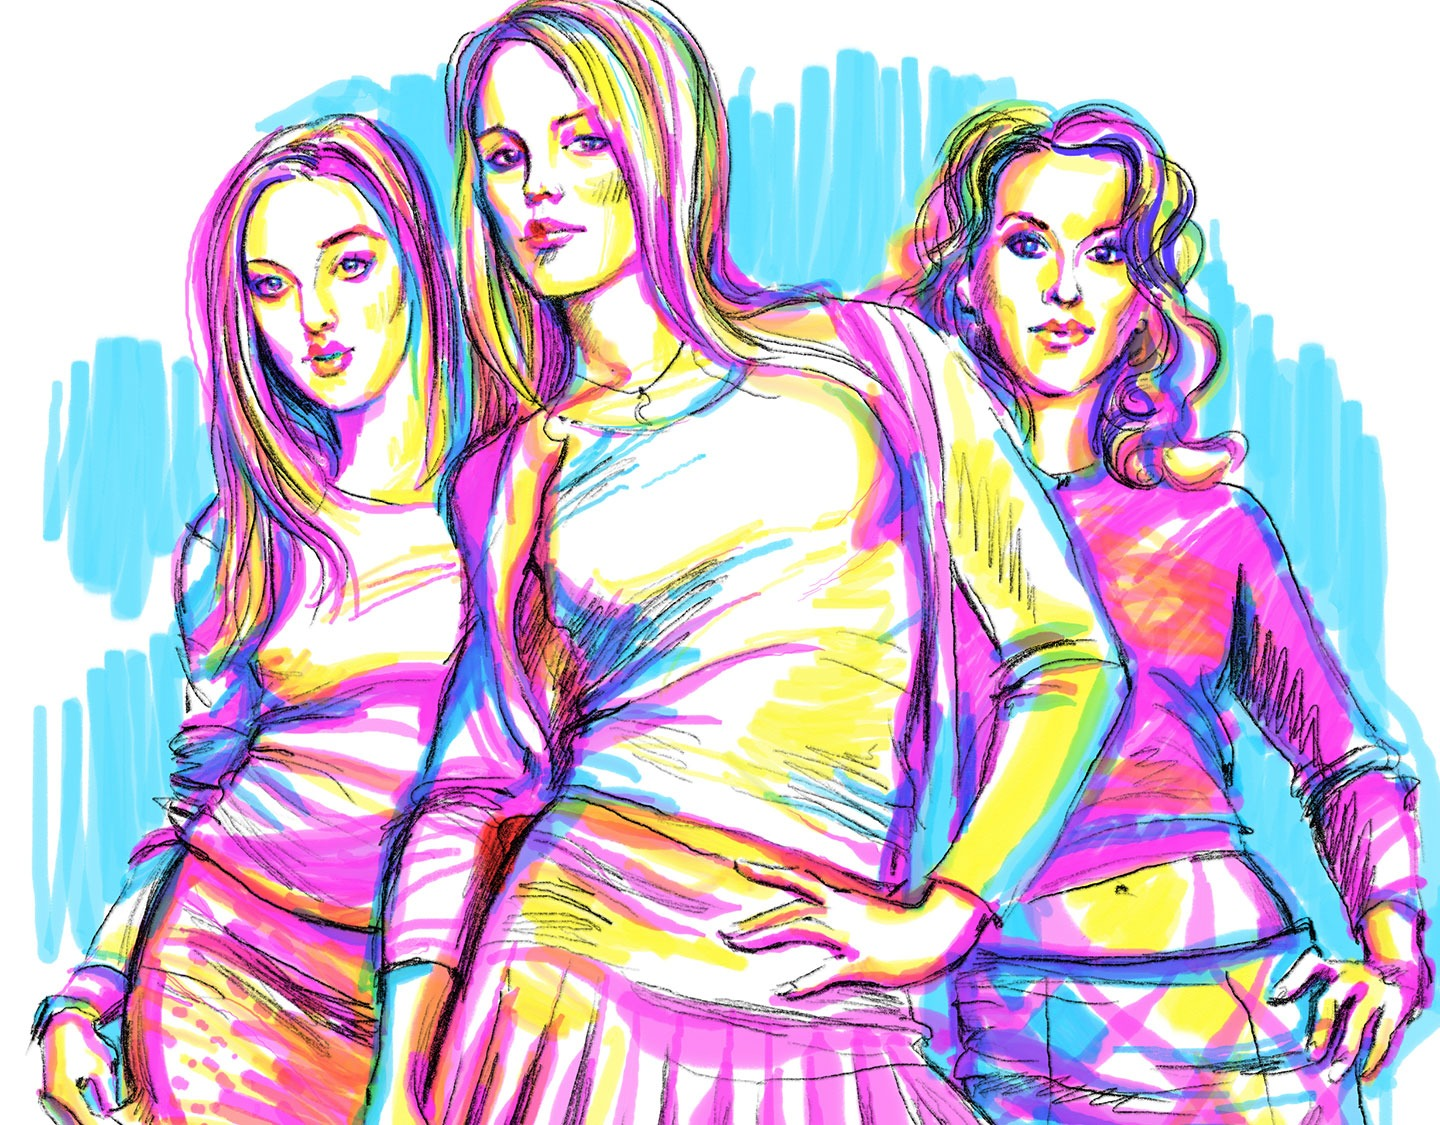 Marker drawing of Mean Girls